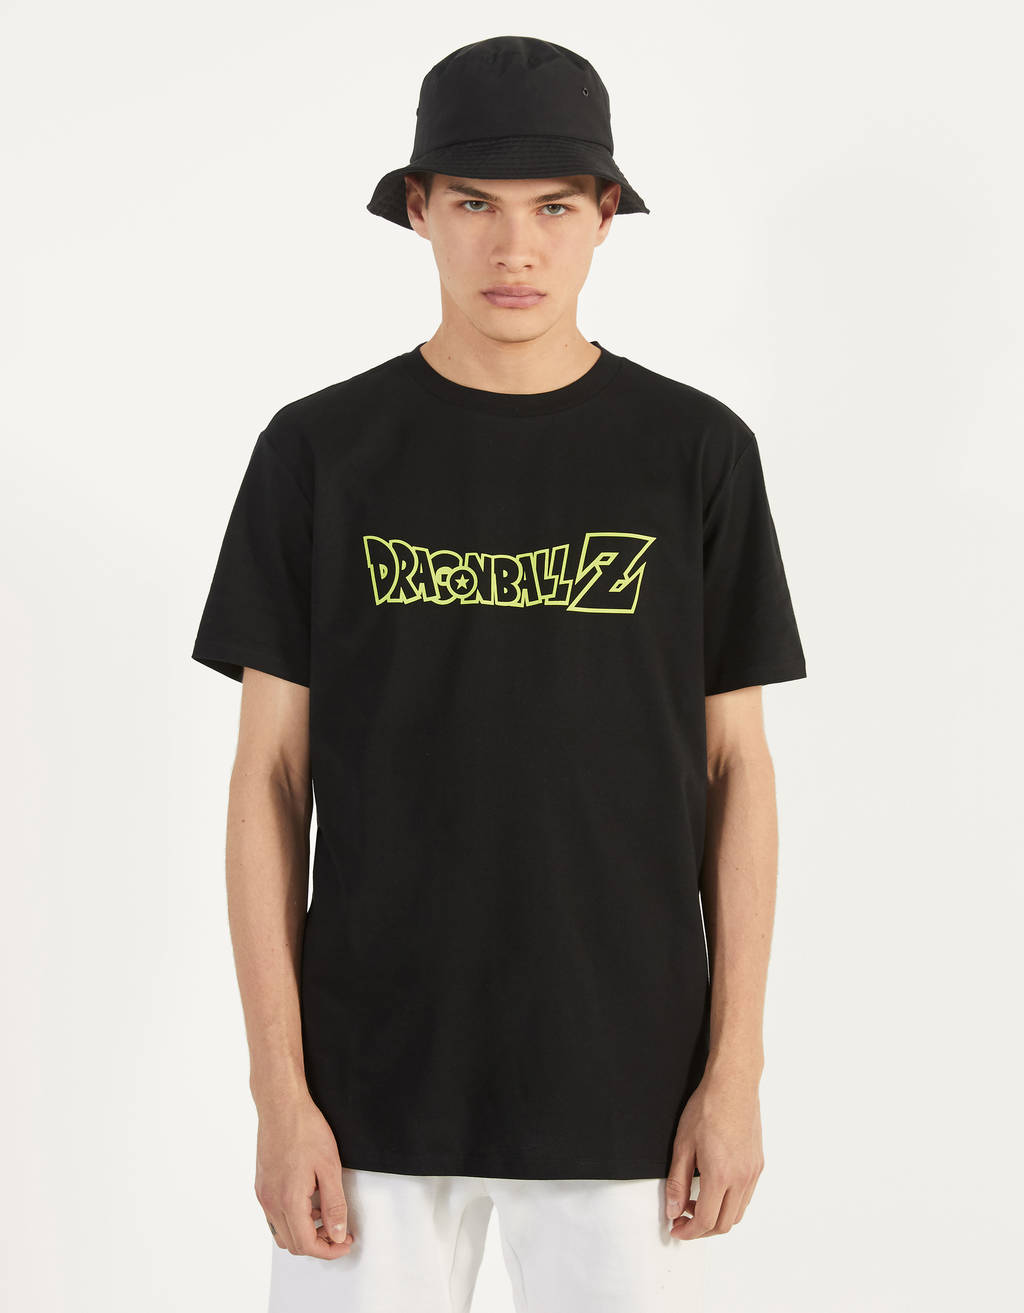 T-shirt Dragon Ball Z x Bershka